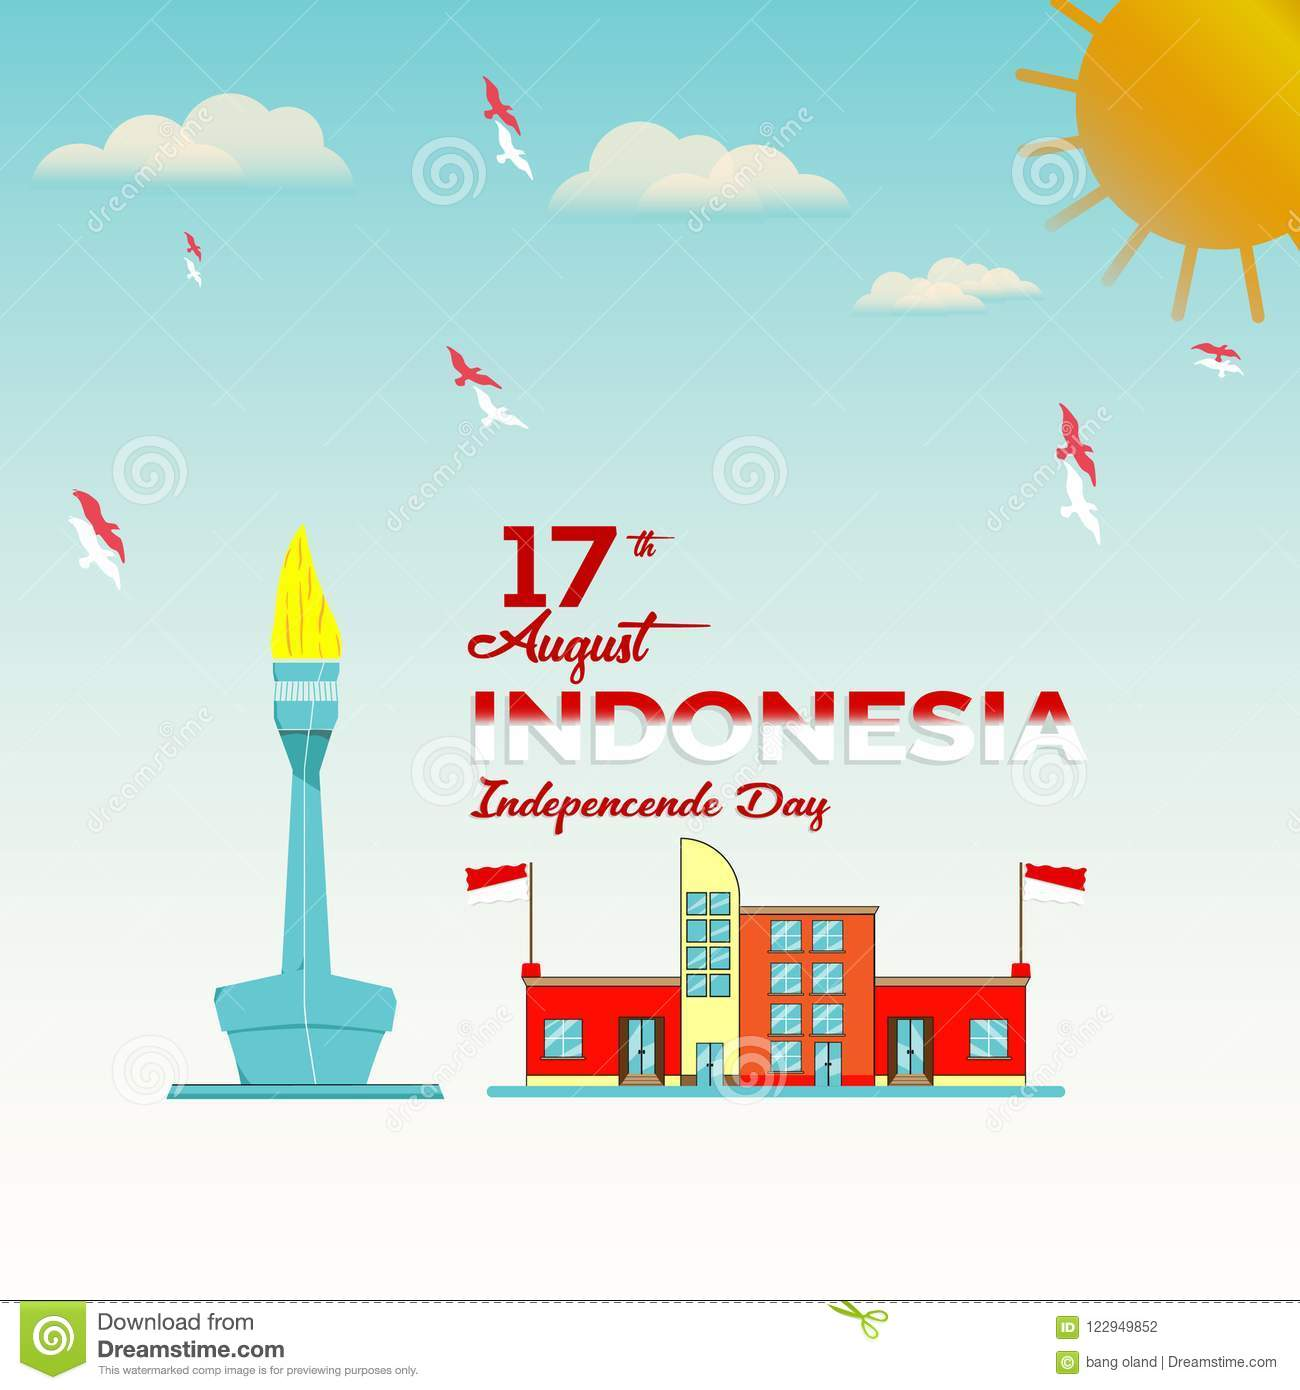 Vector blue background color design, Illustration of Indonesia Icons and landmarks.